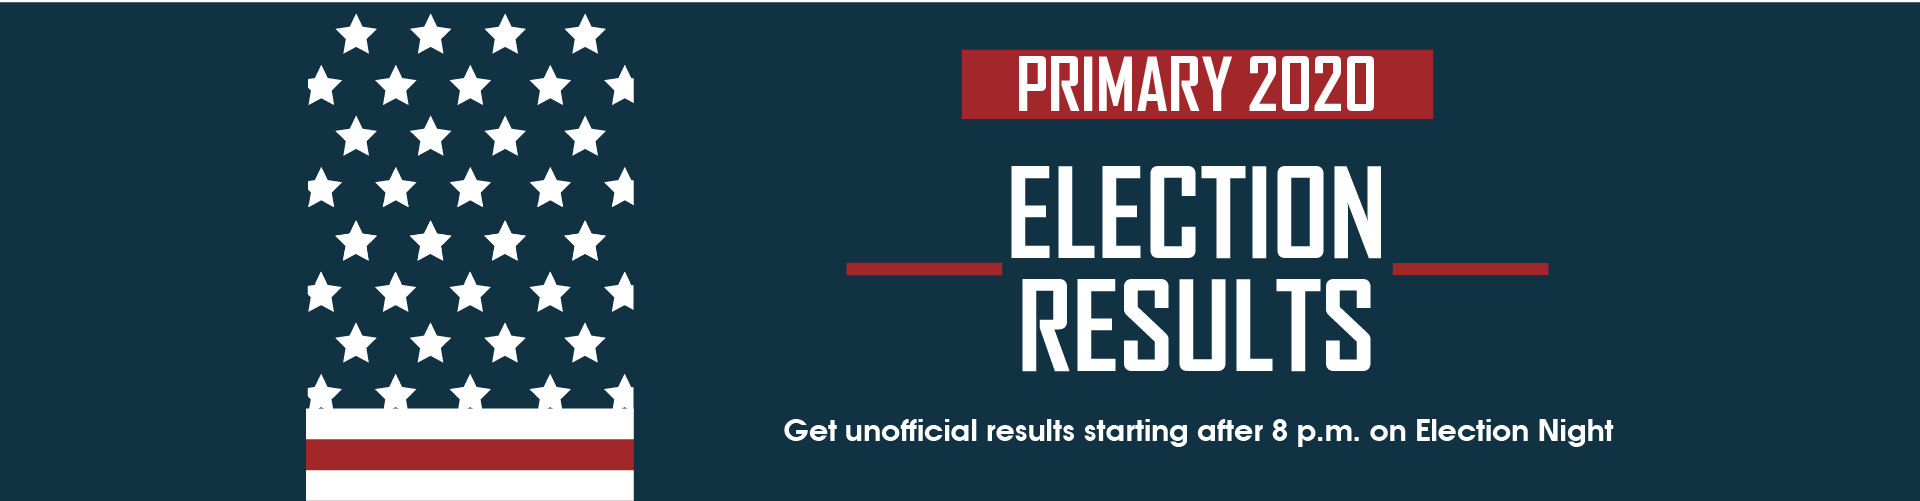 Get unofficial results starting after 8 p.m. on Election Night (Opens in New Window)